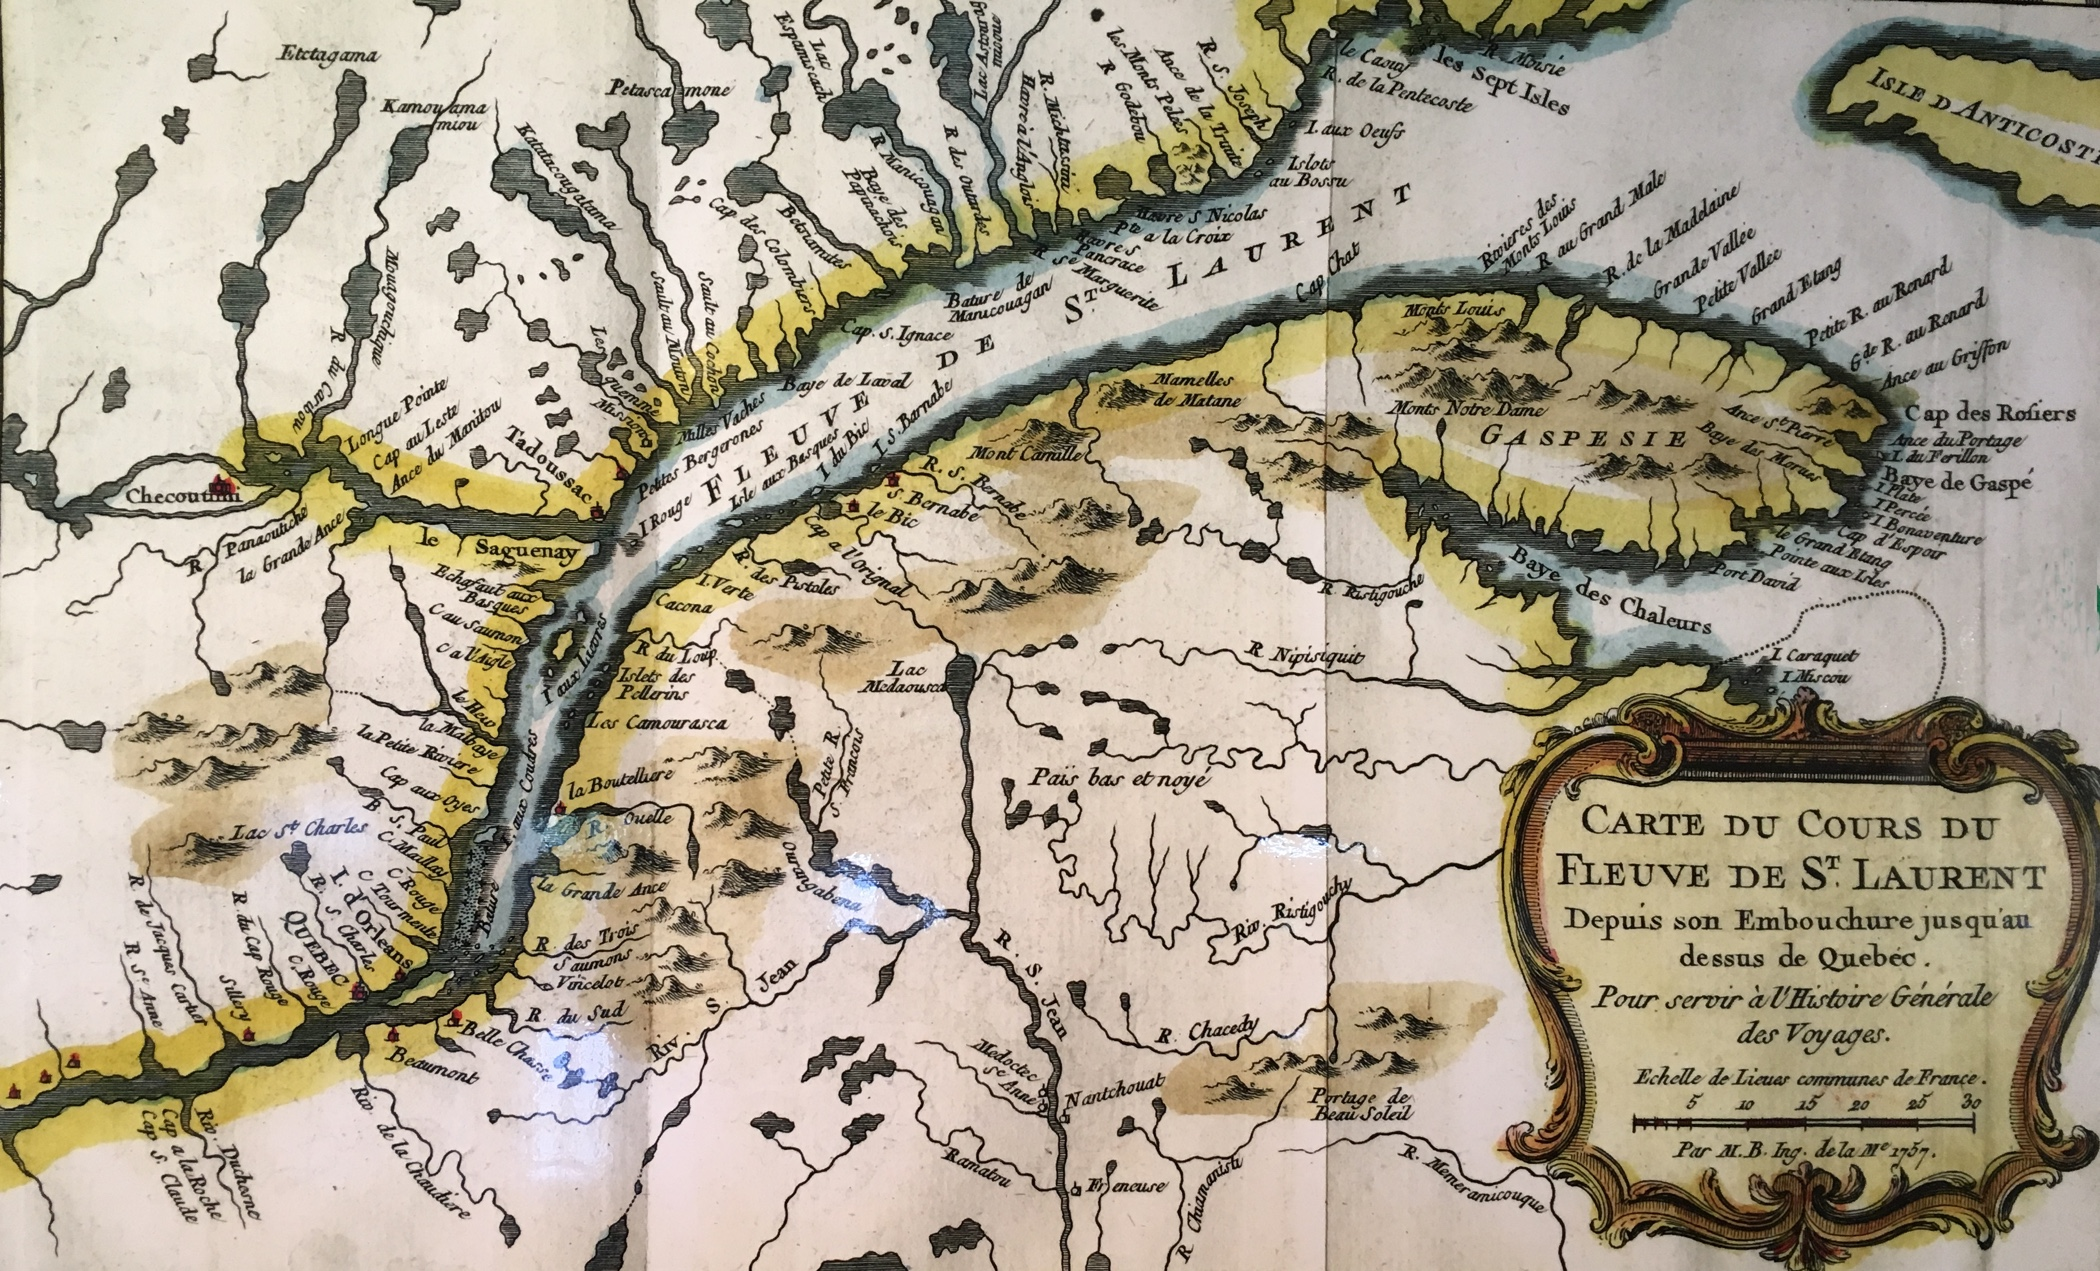 A colour photo of a map depicting the gulf of the Saint Lawrence, the Gaspé region, and the length of the river itself almost to Quebec City. The land surrounding the river and gulf has lakes and smaller rivers drawn in also.